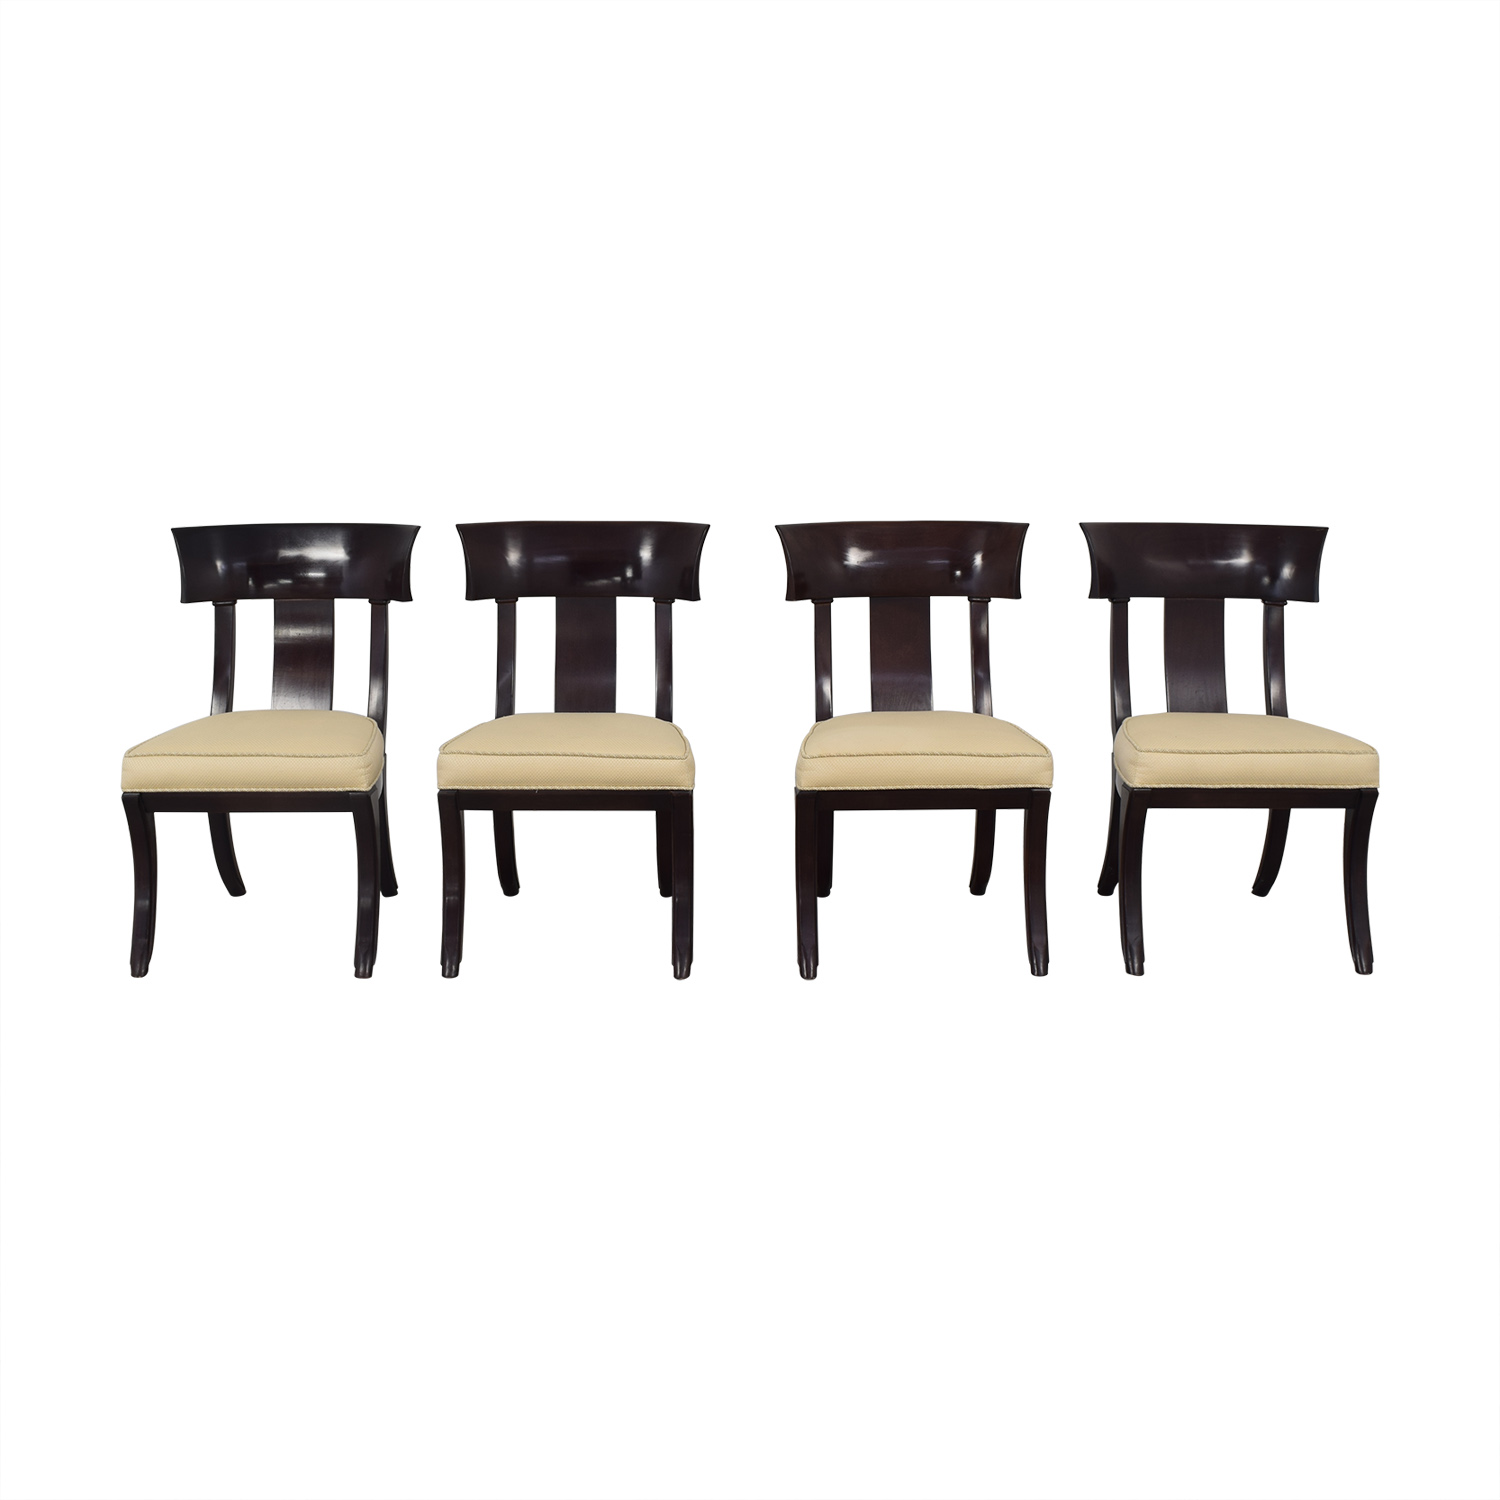 Henredon Furniture Henredon Upholstered Dining Chairs used